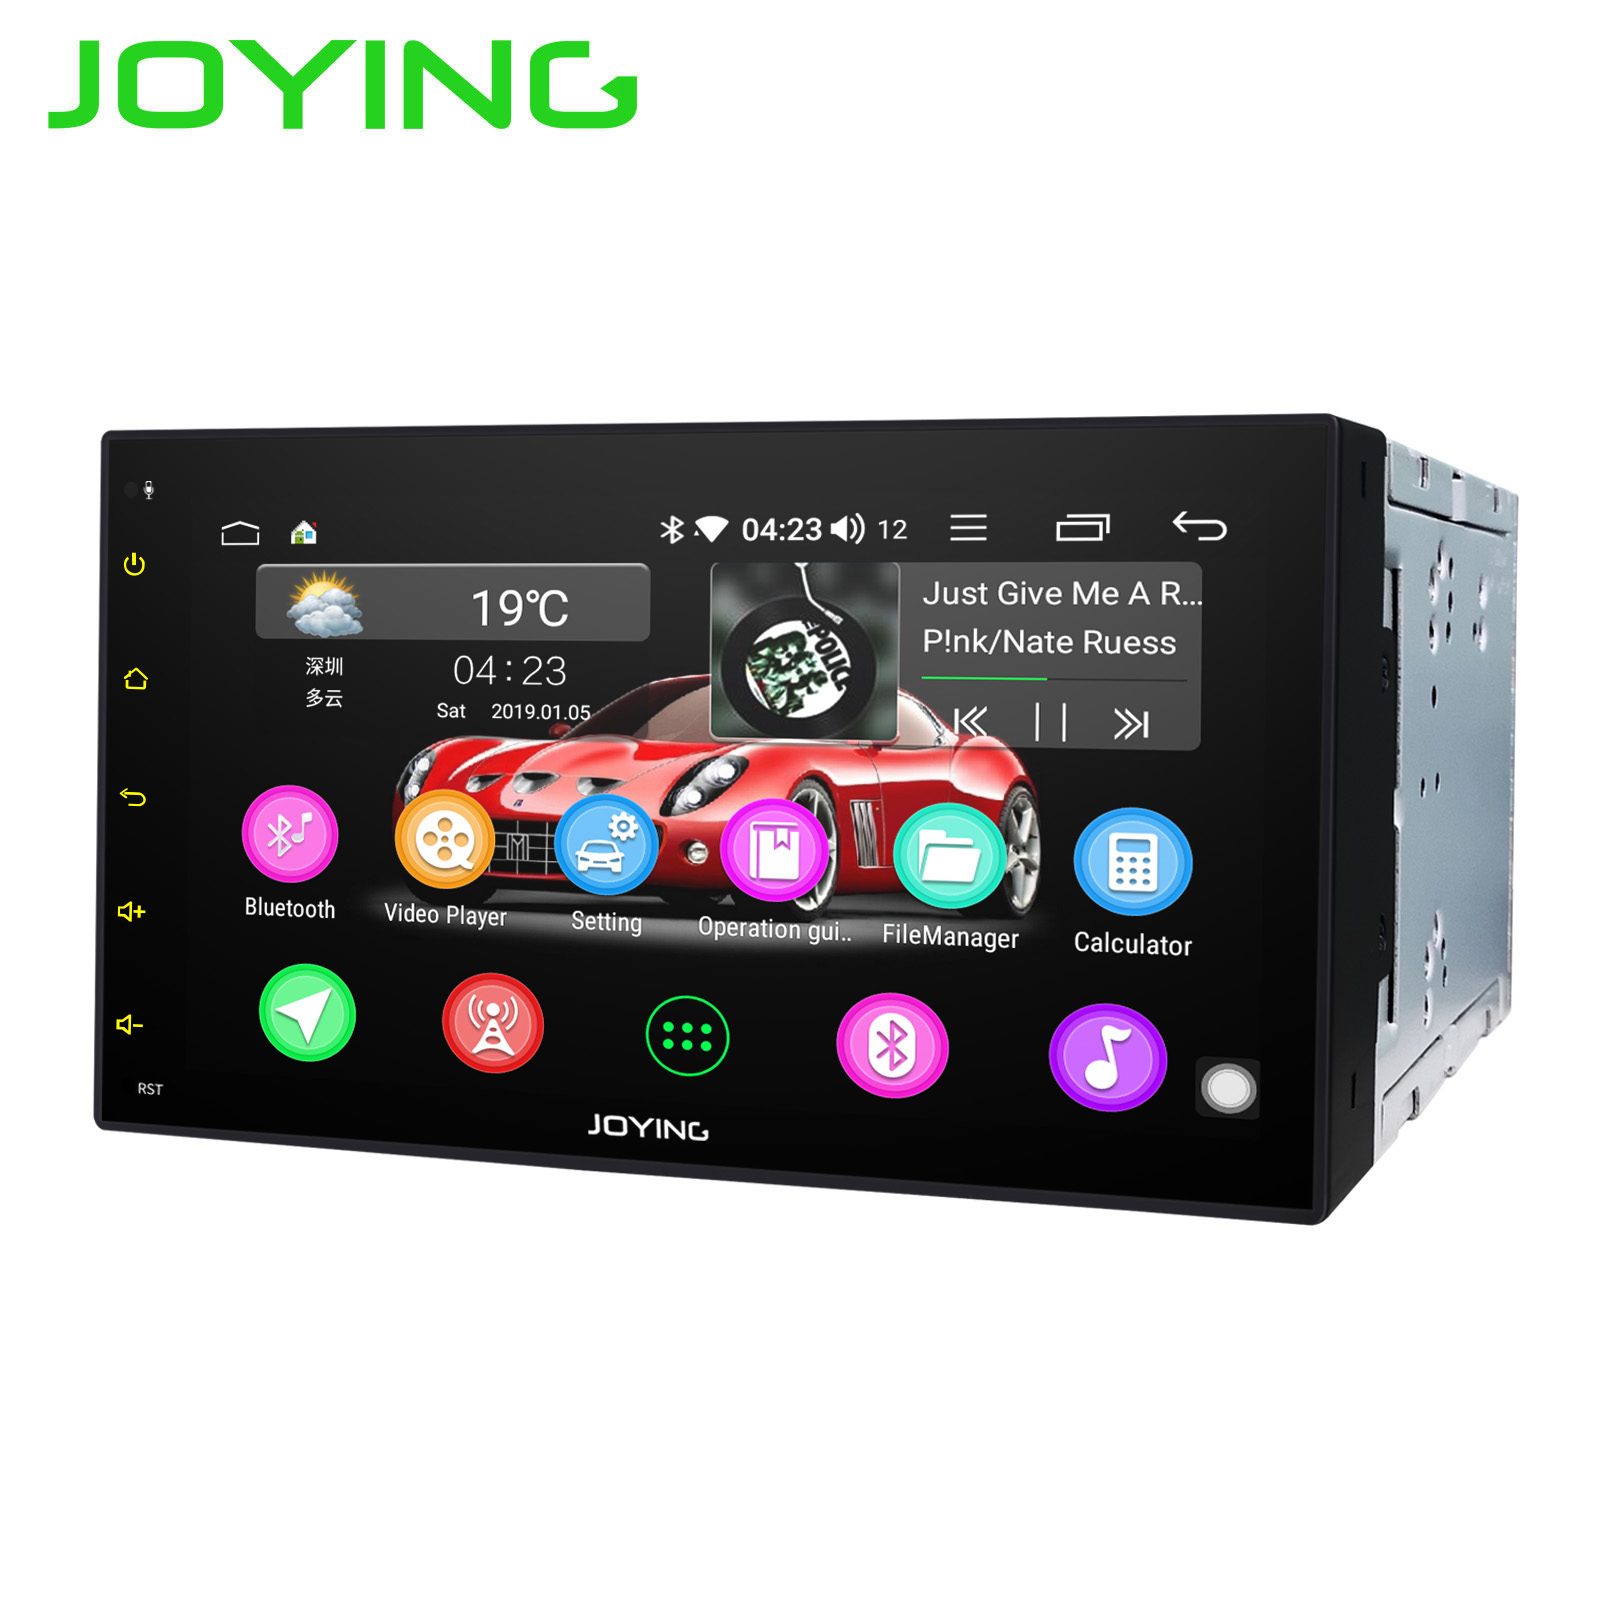 "JOYING double 2 din 6.95"" car radio Android 8.1 Octa Core with DSP GPS Navigation head unit SWC universal BTstereo audio player-in Car Multimedia Player from Automobiles & Motorcycles    1"